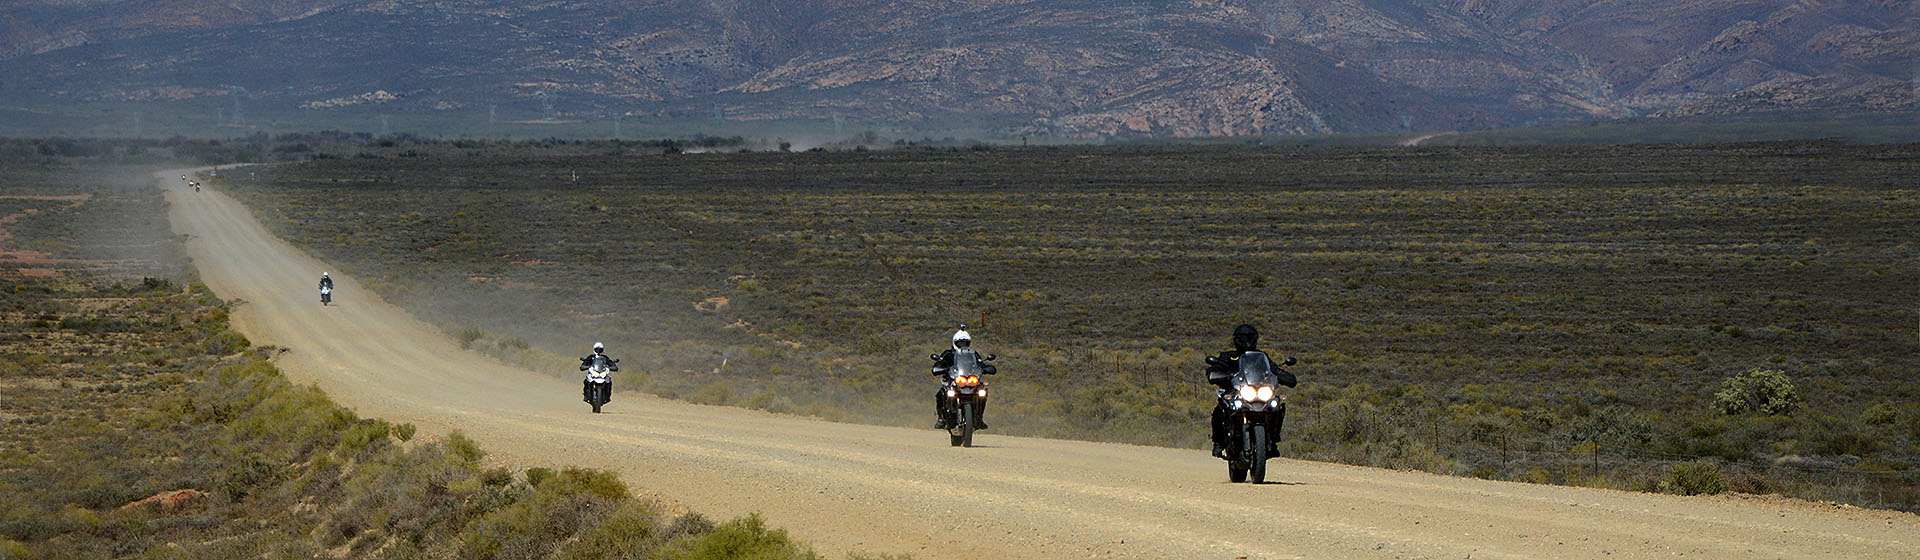 Triumph Motorcycle Tours in SA